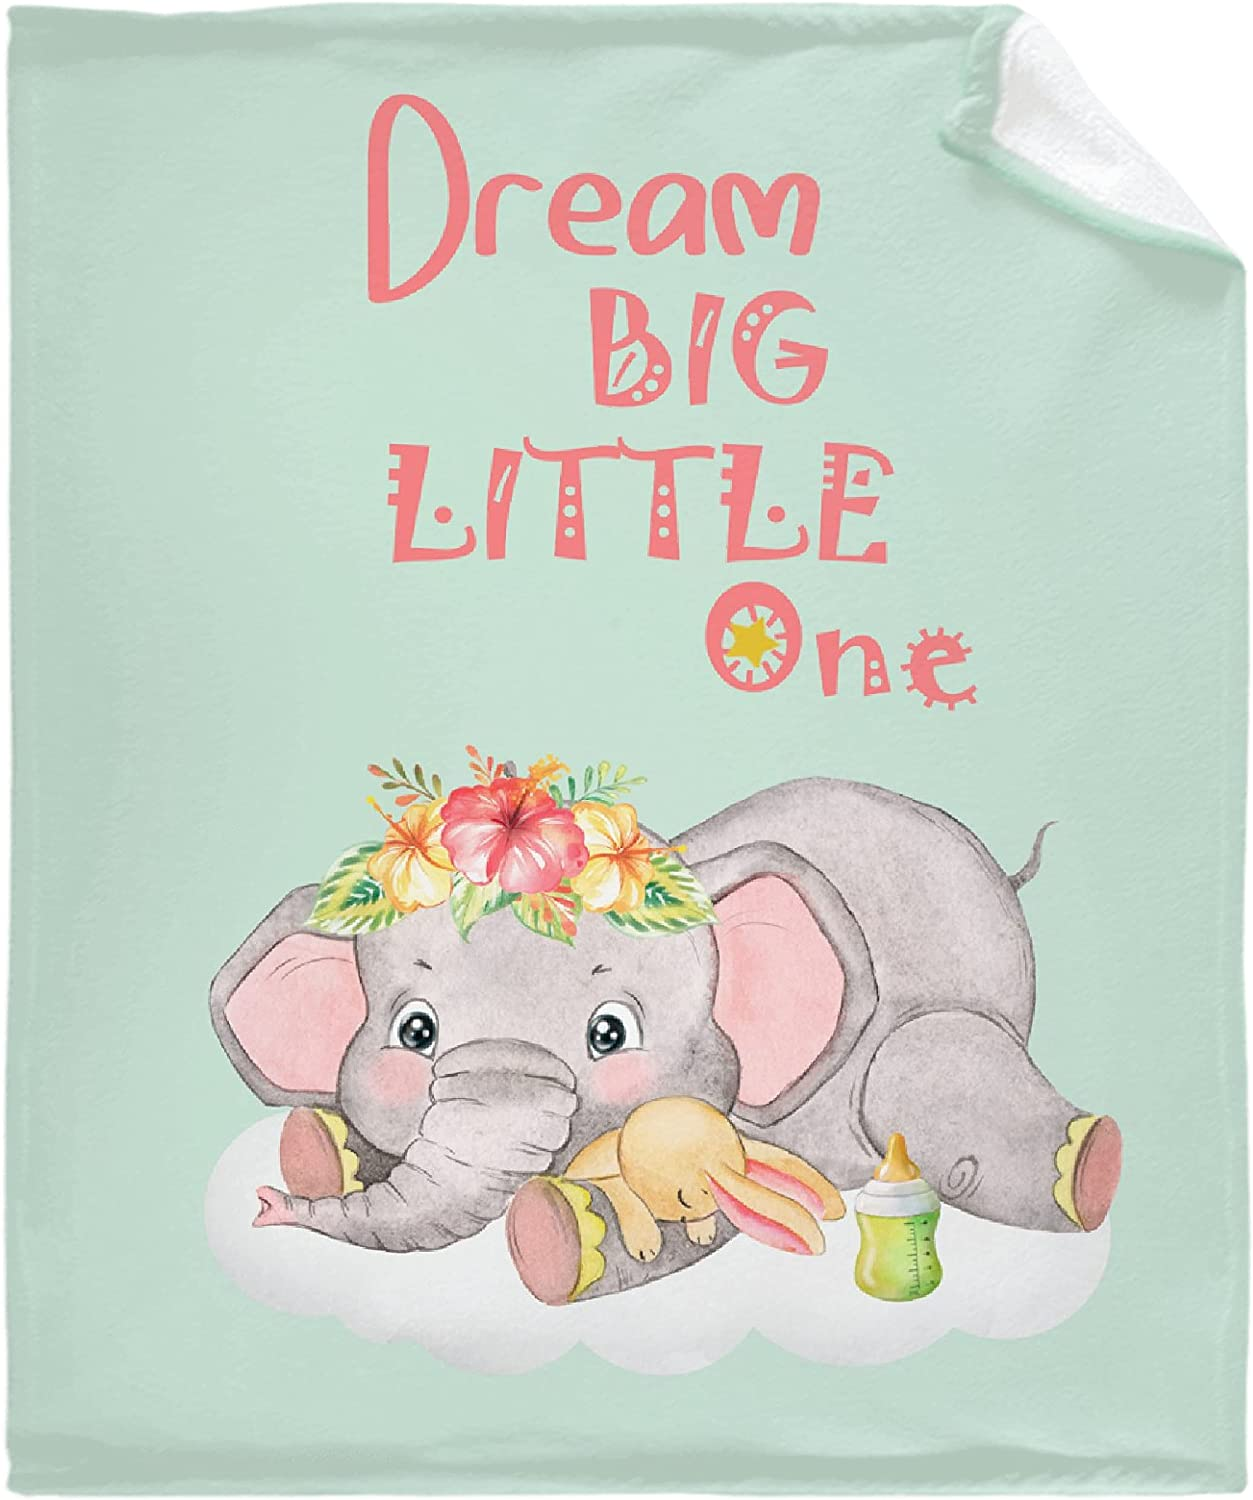 Muilti-Style Dream Big Little One Outlet SALE Blanket Elephants Throw Green Challenge the lowest price of Japan